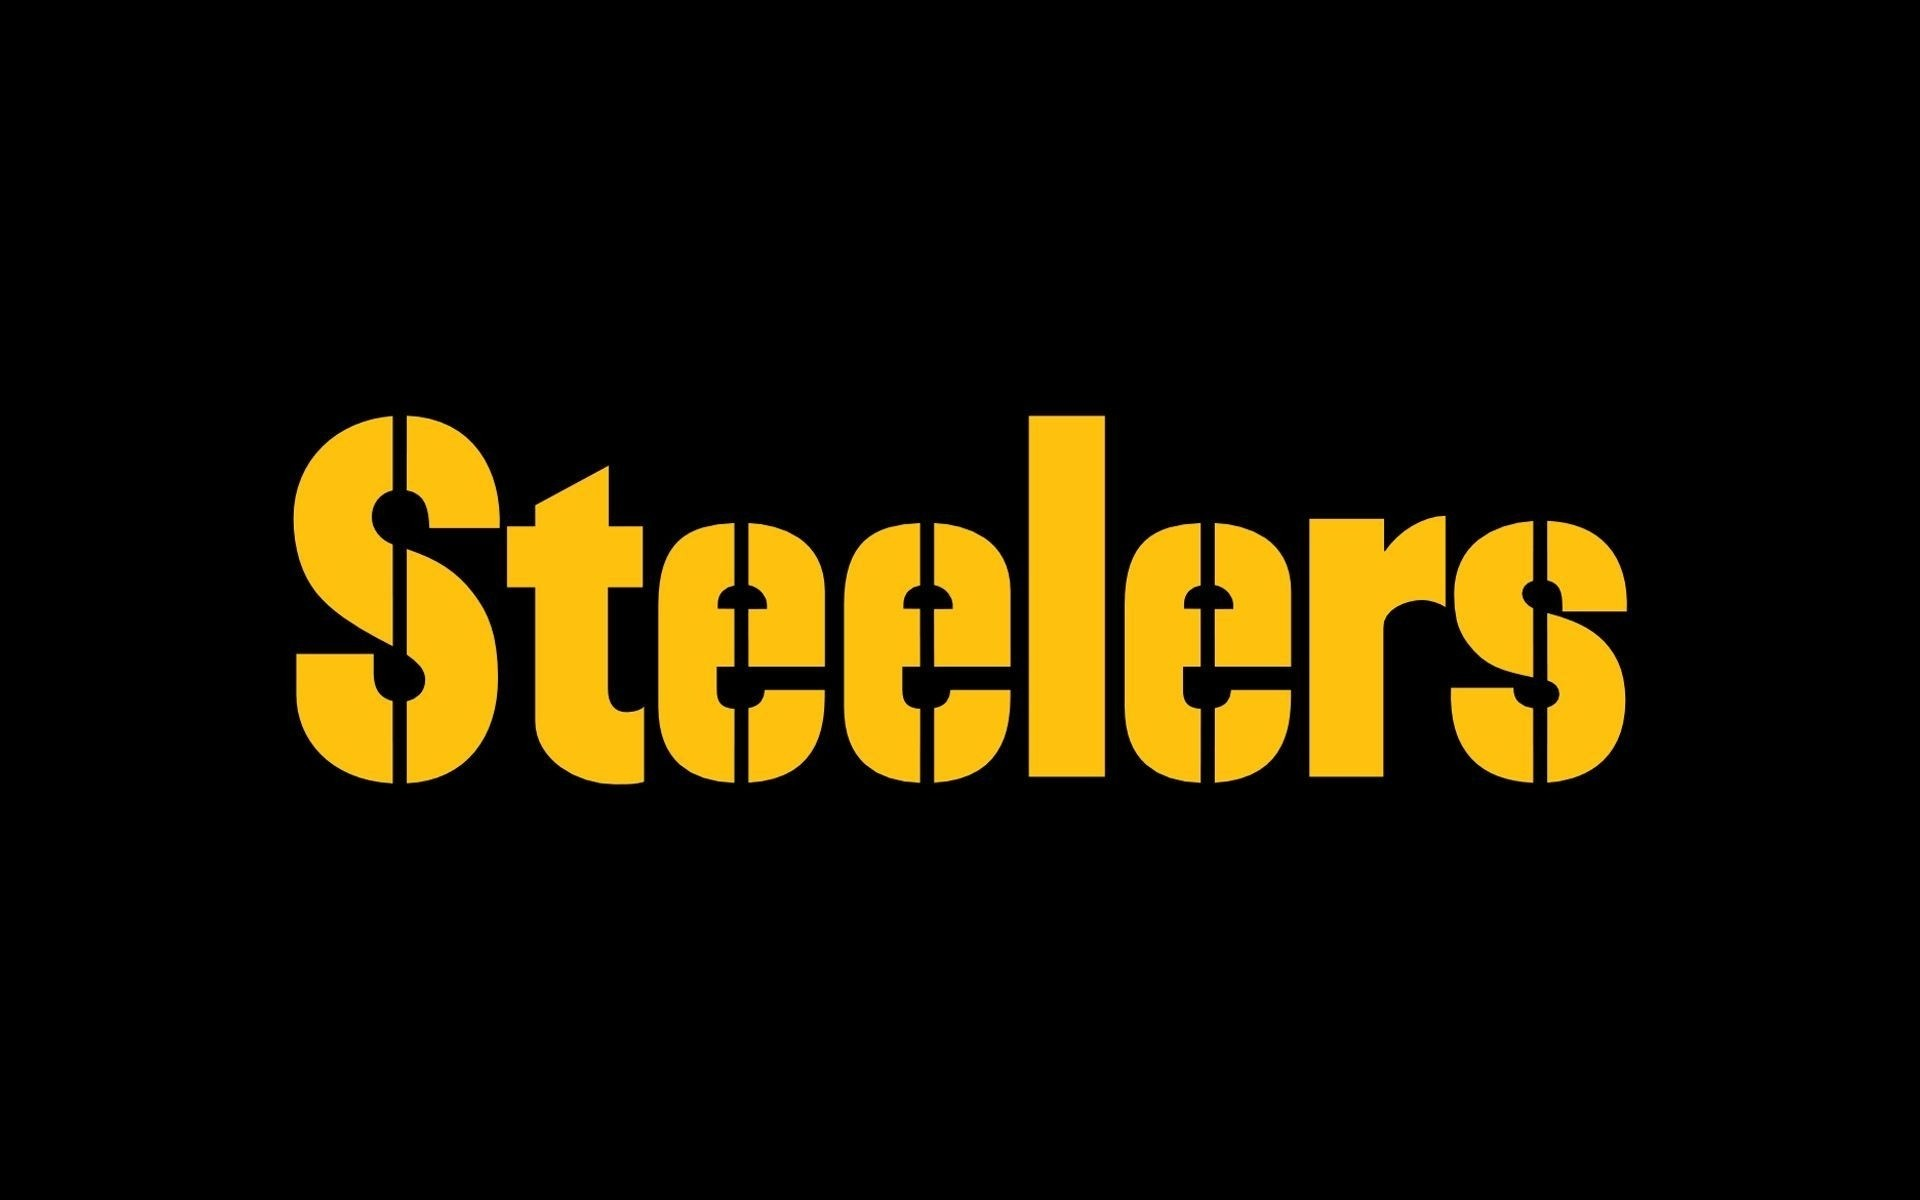 1920x1200 - Steelers Desktop 50